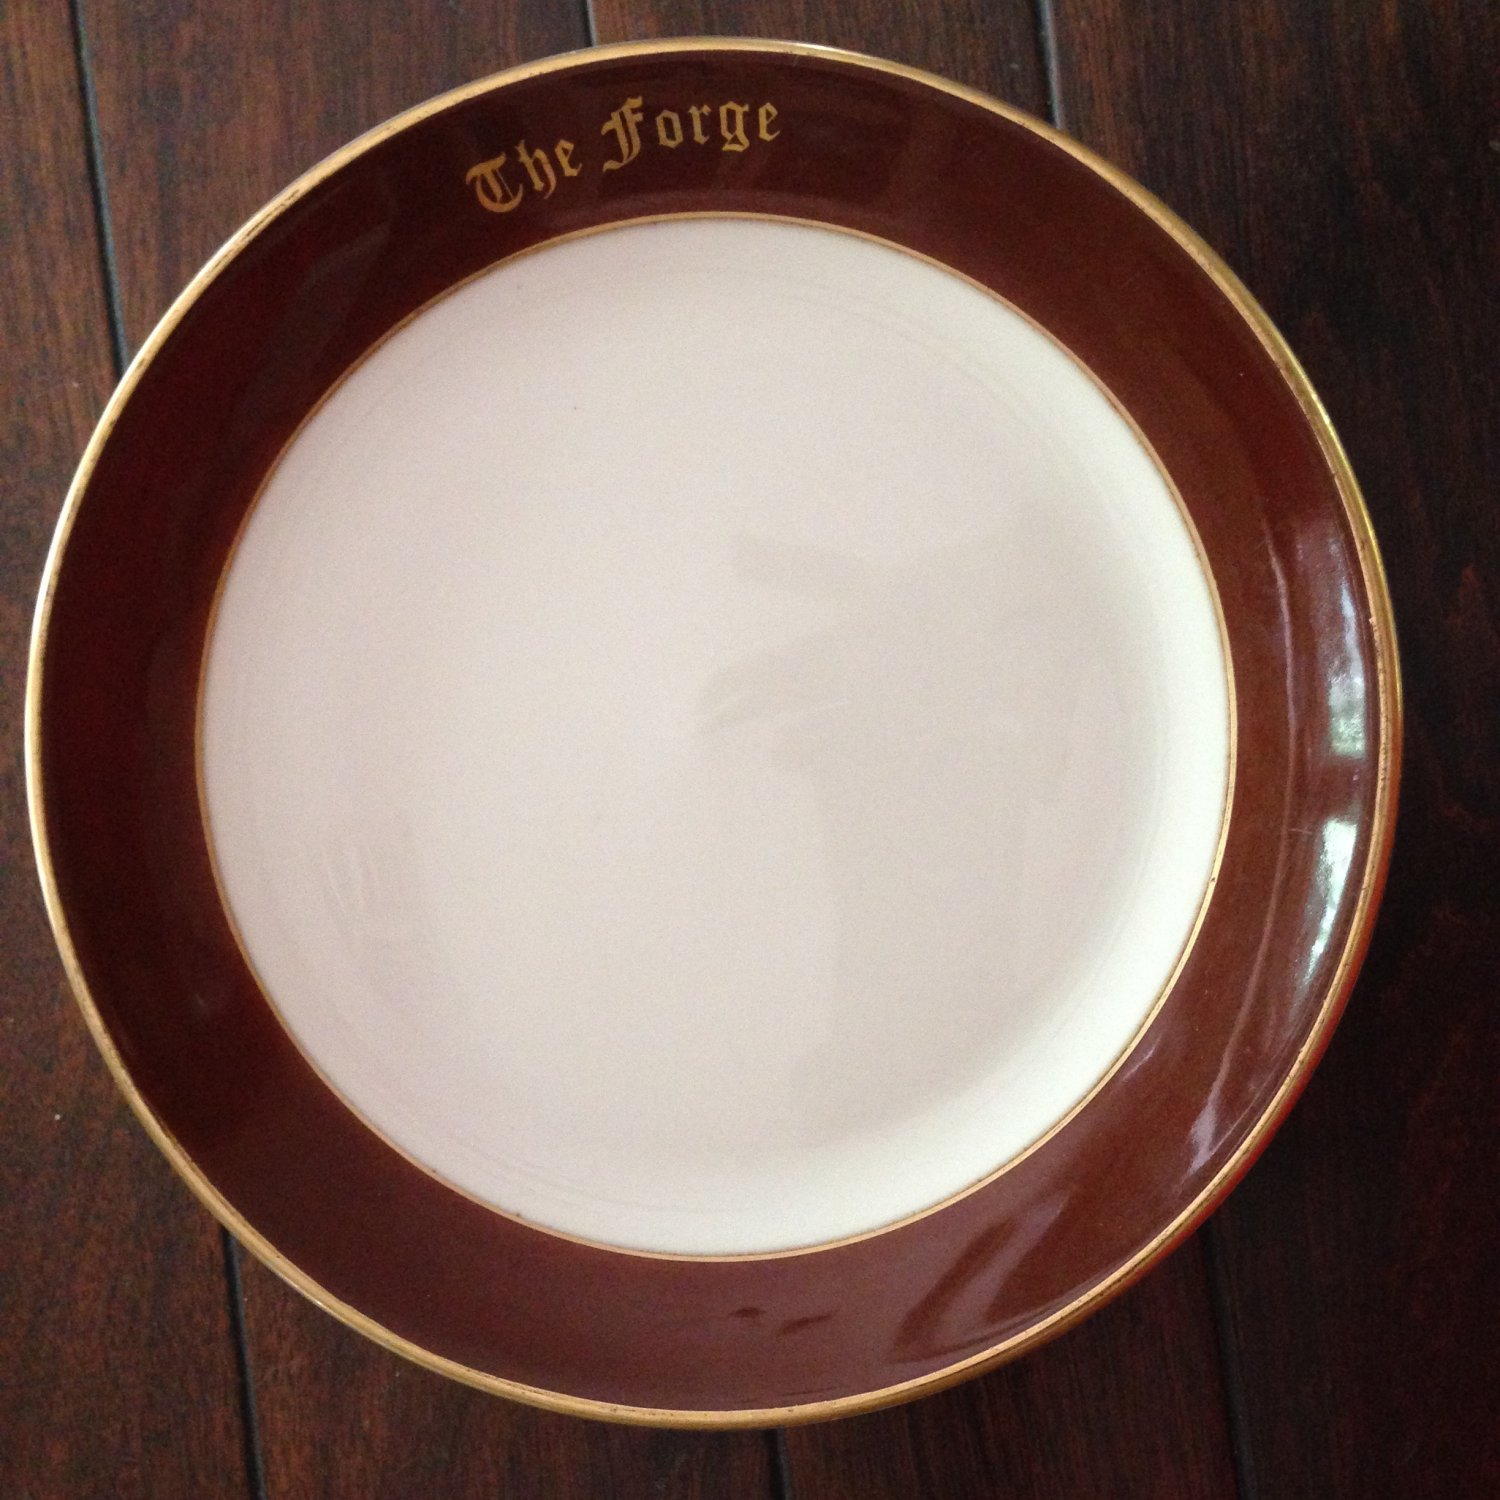 Homer Laughlin Best China Restaurant Ware Plate from The Forge